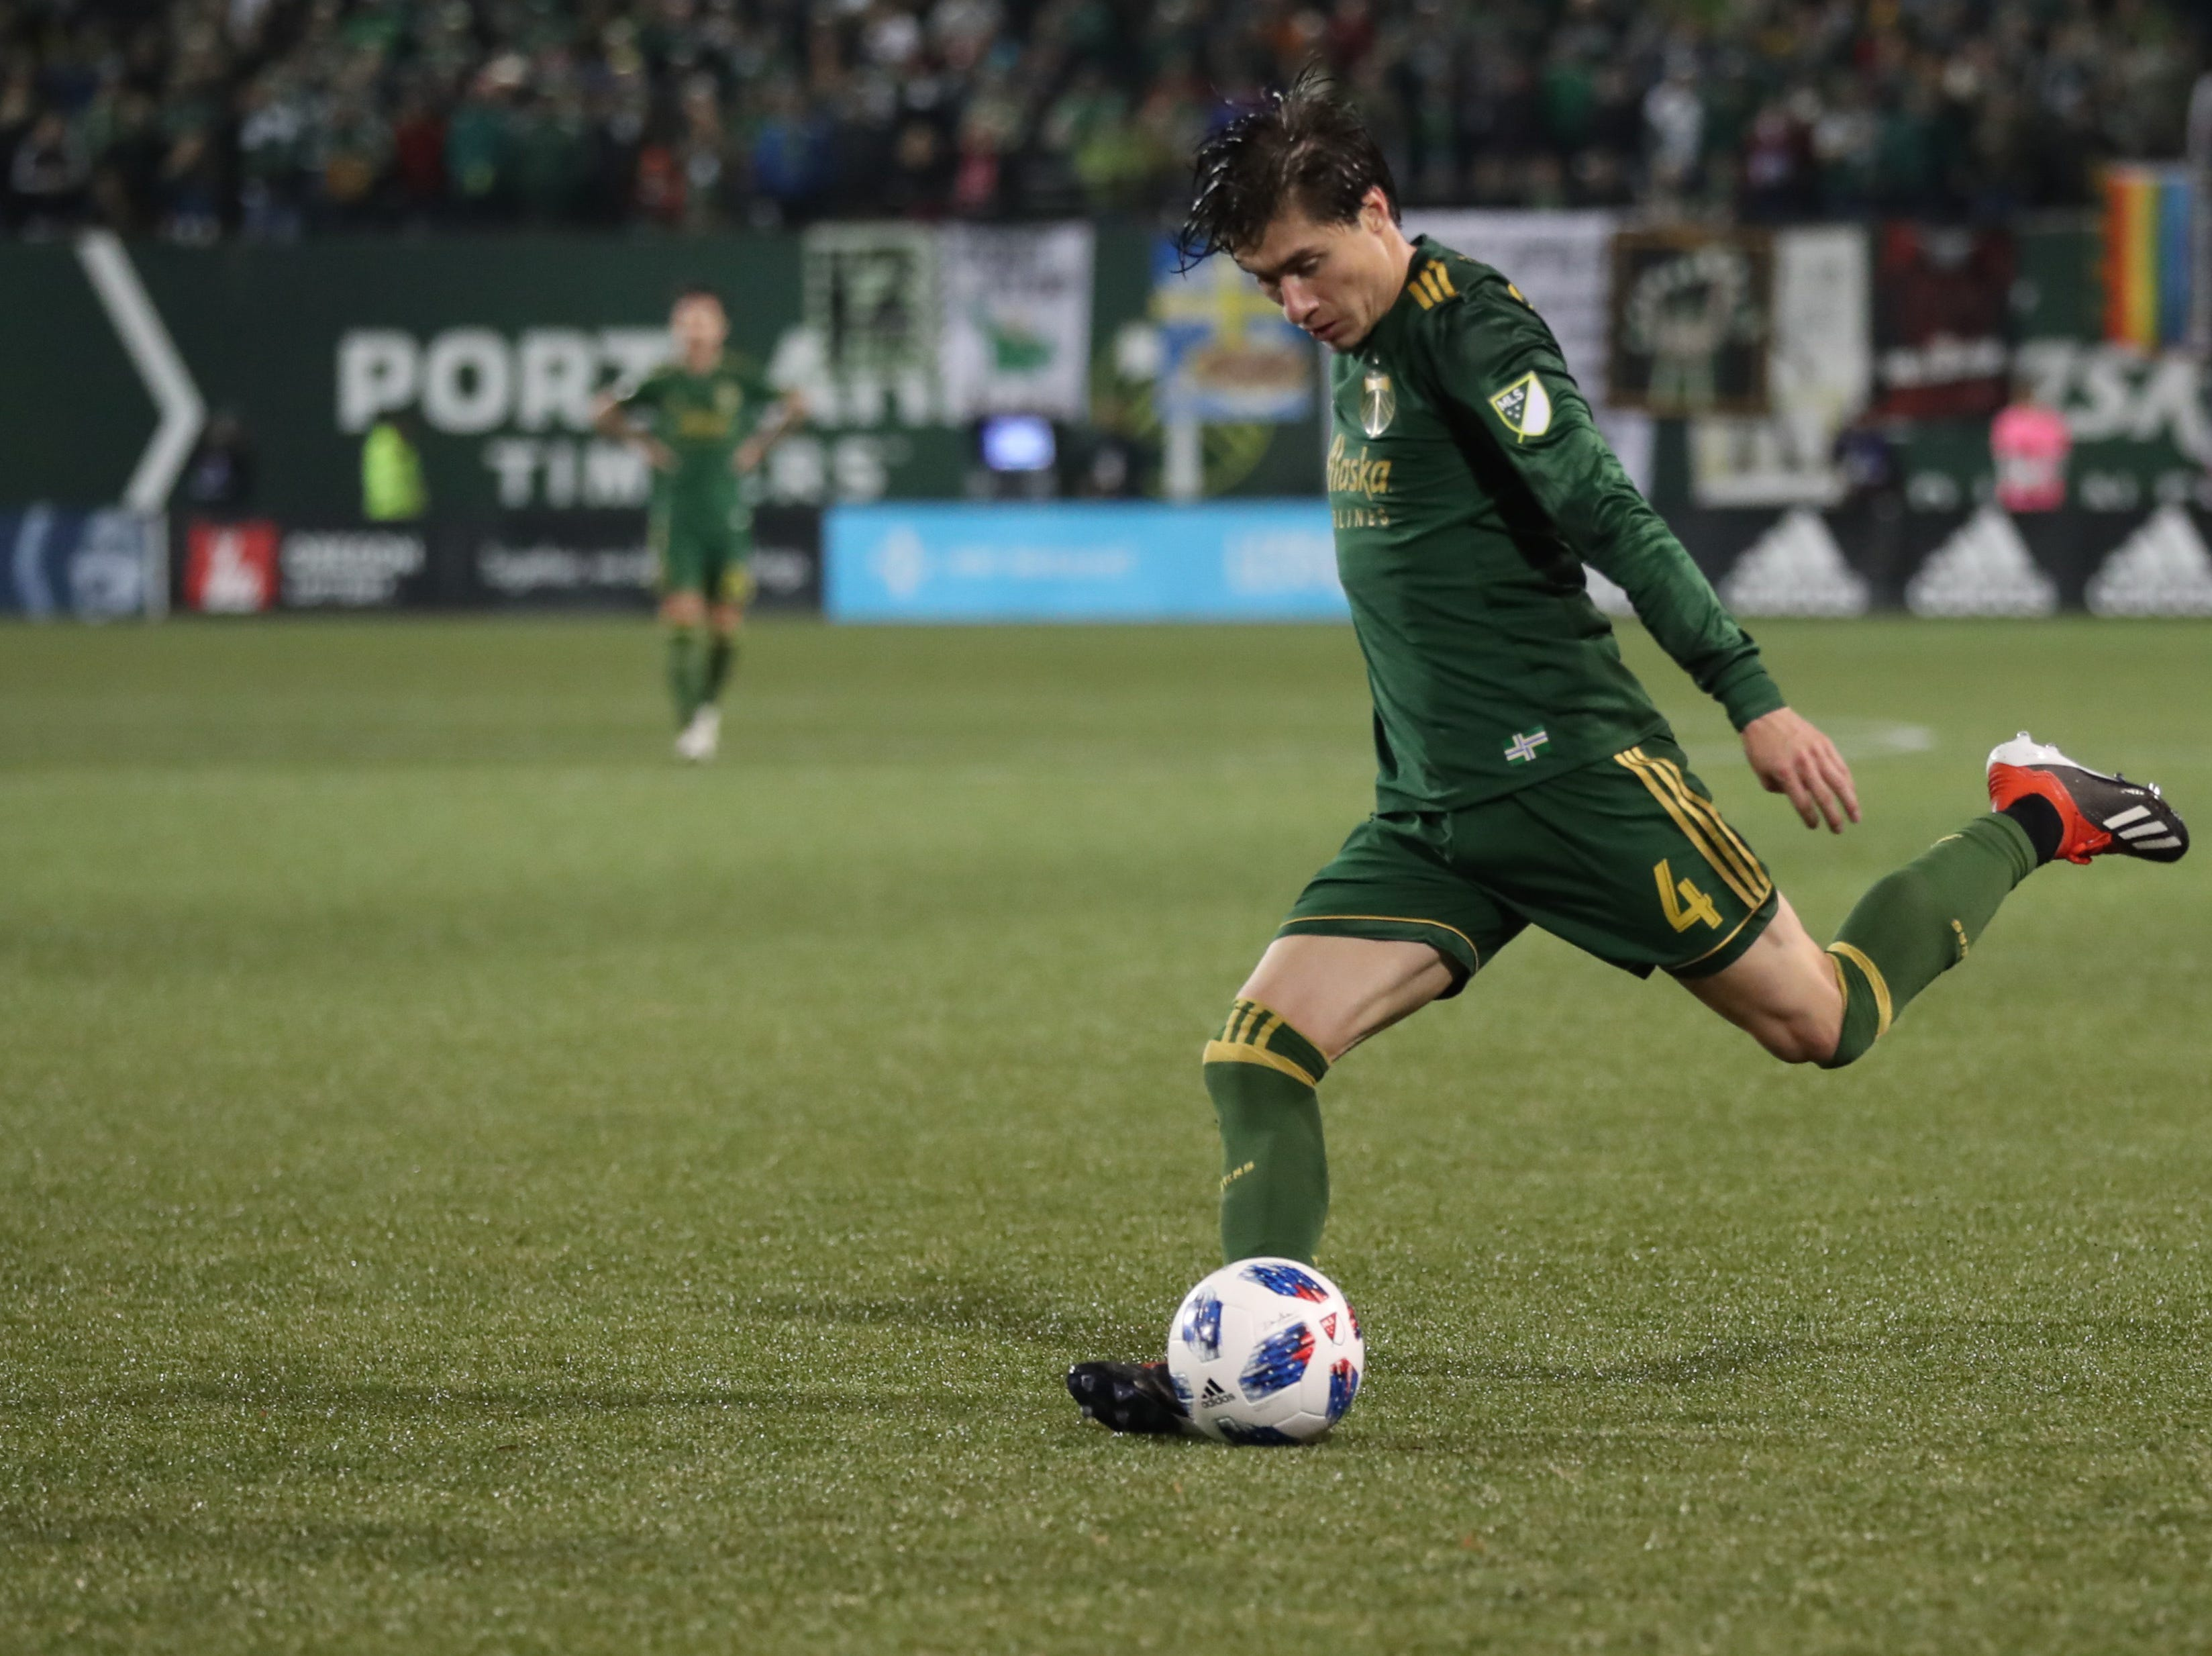 Nov 25, 2018; Portland, OR, USA; Portland Timbers defender Jorge Villafana (4) kicks the ball against the Sporting Kansas City in the second of the first leg of the MLS Western Conference Championship at Providence Park. Mandatory Credit: Jaime Valdez-USA TODAY Sports